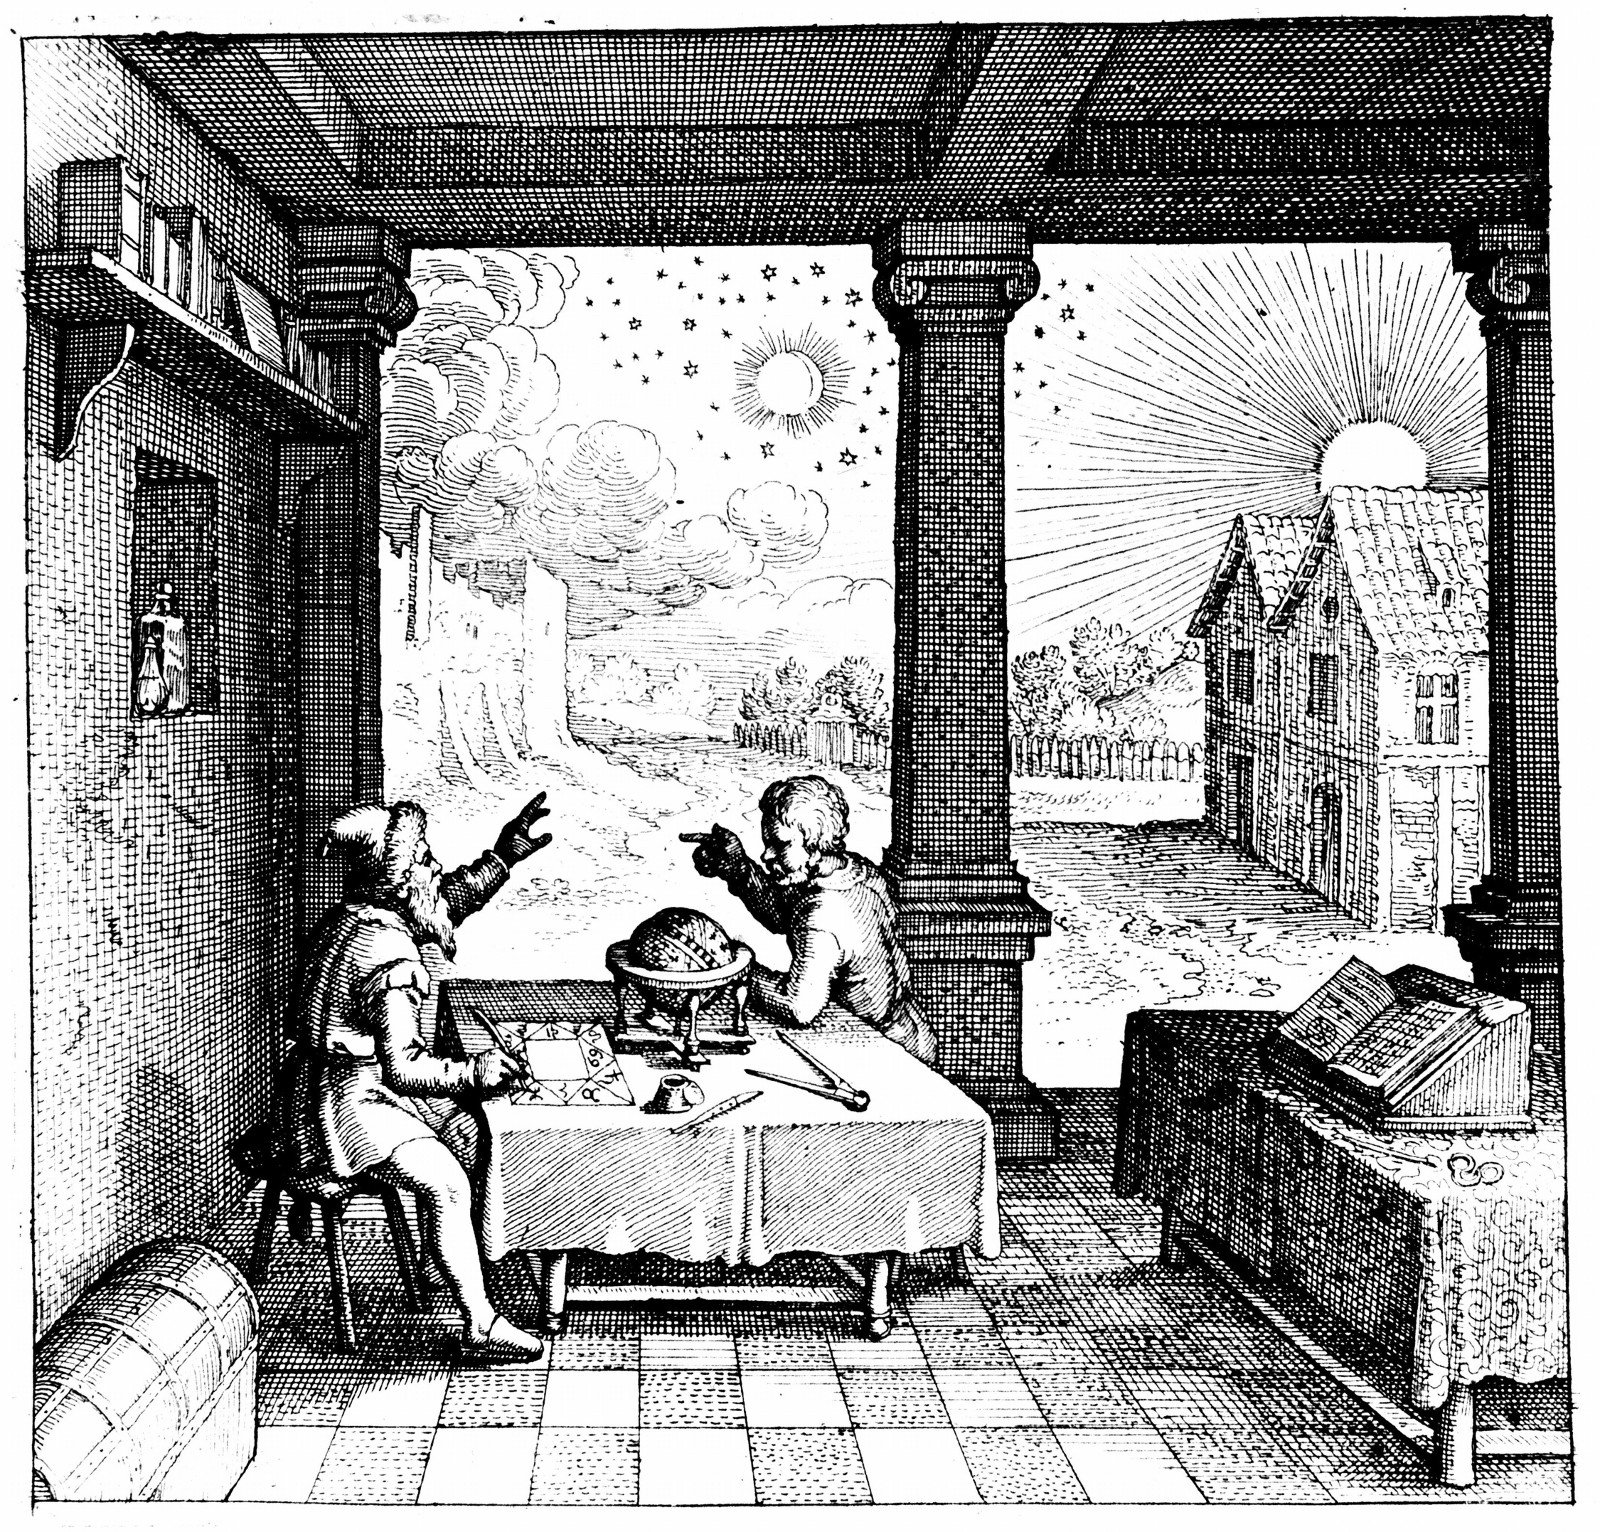 An astrologer casts a horoscope for a client - from Robert Fludd's  Utriusque Cosmi Historia  (1617)